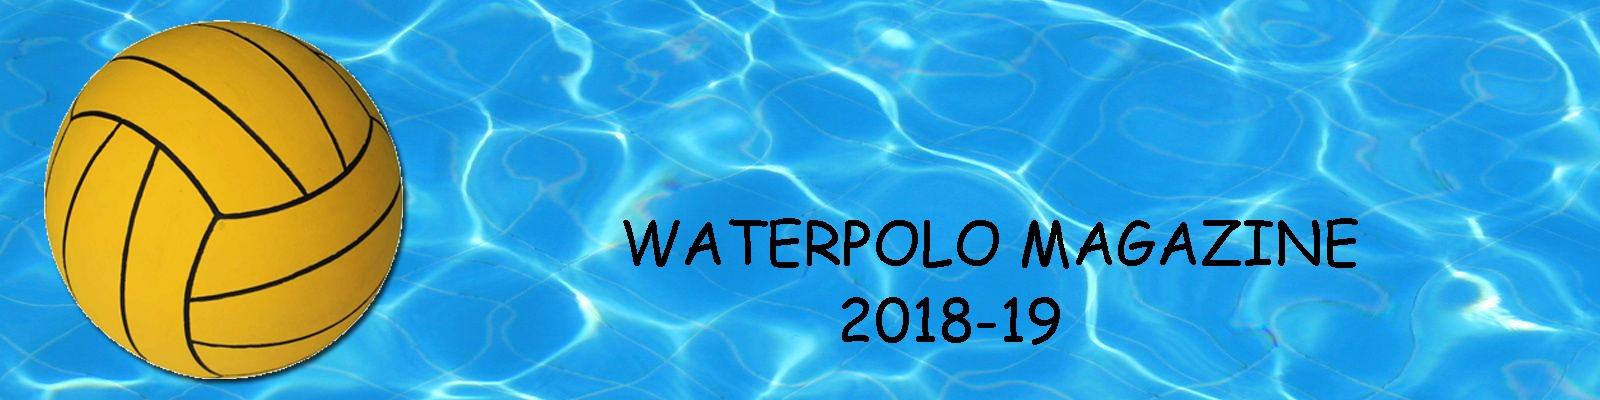 Water Polo Magazine anno 2018-19